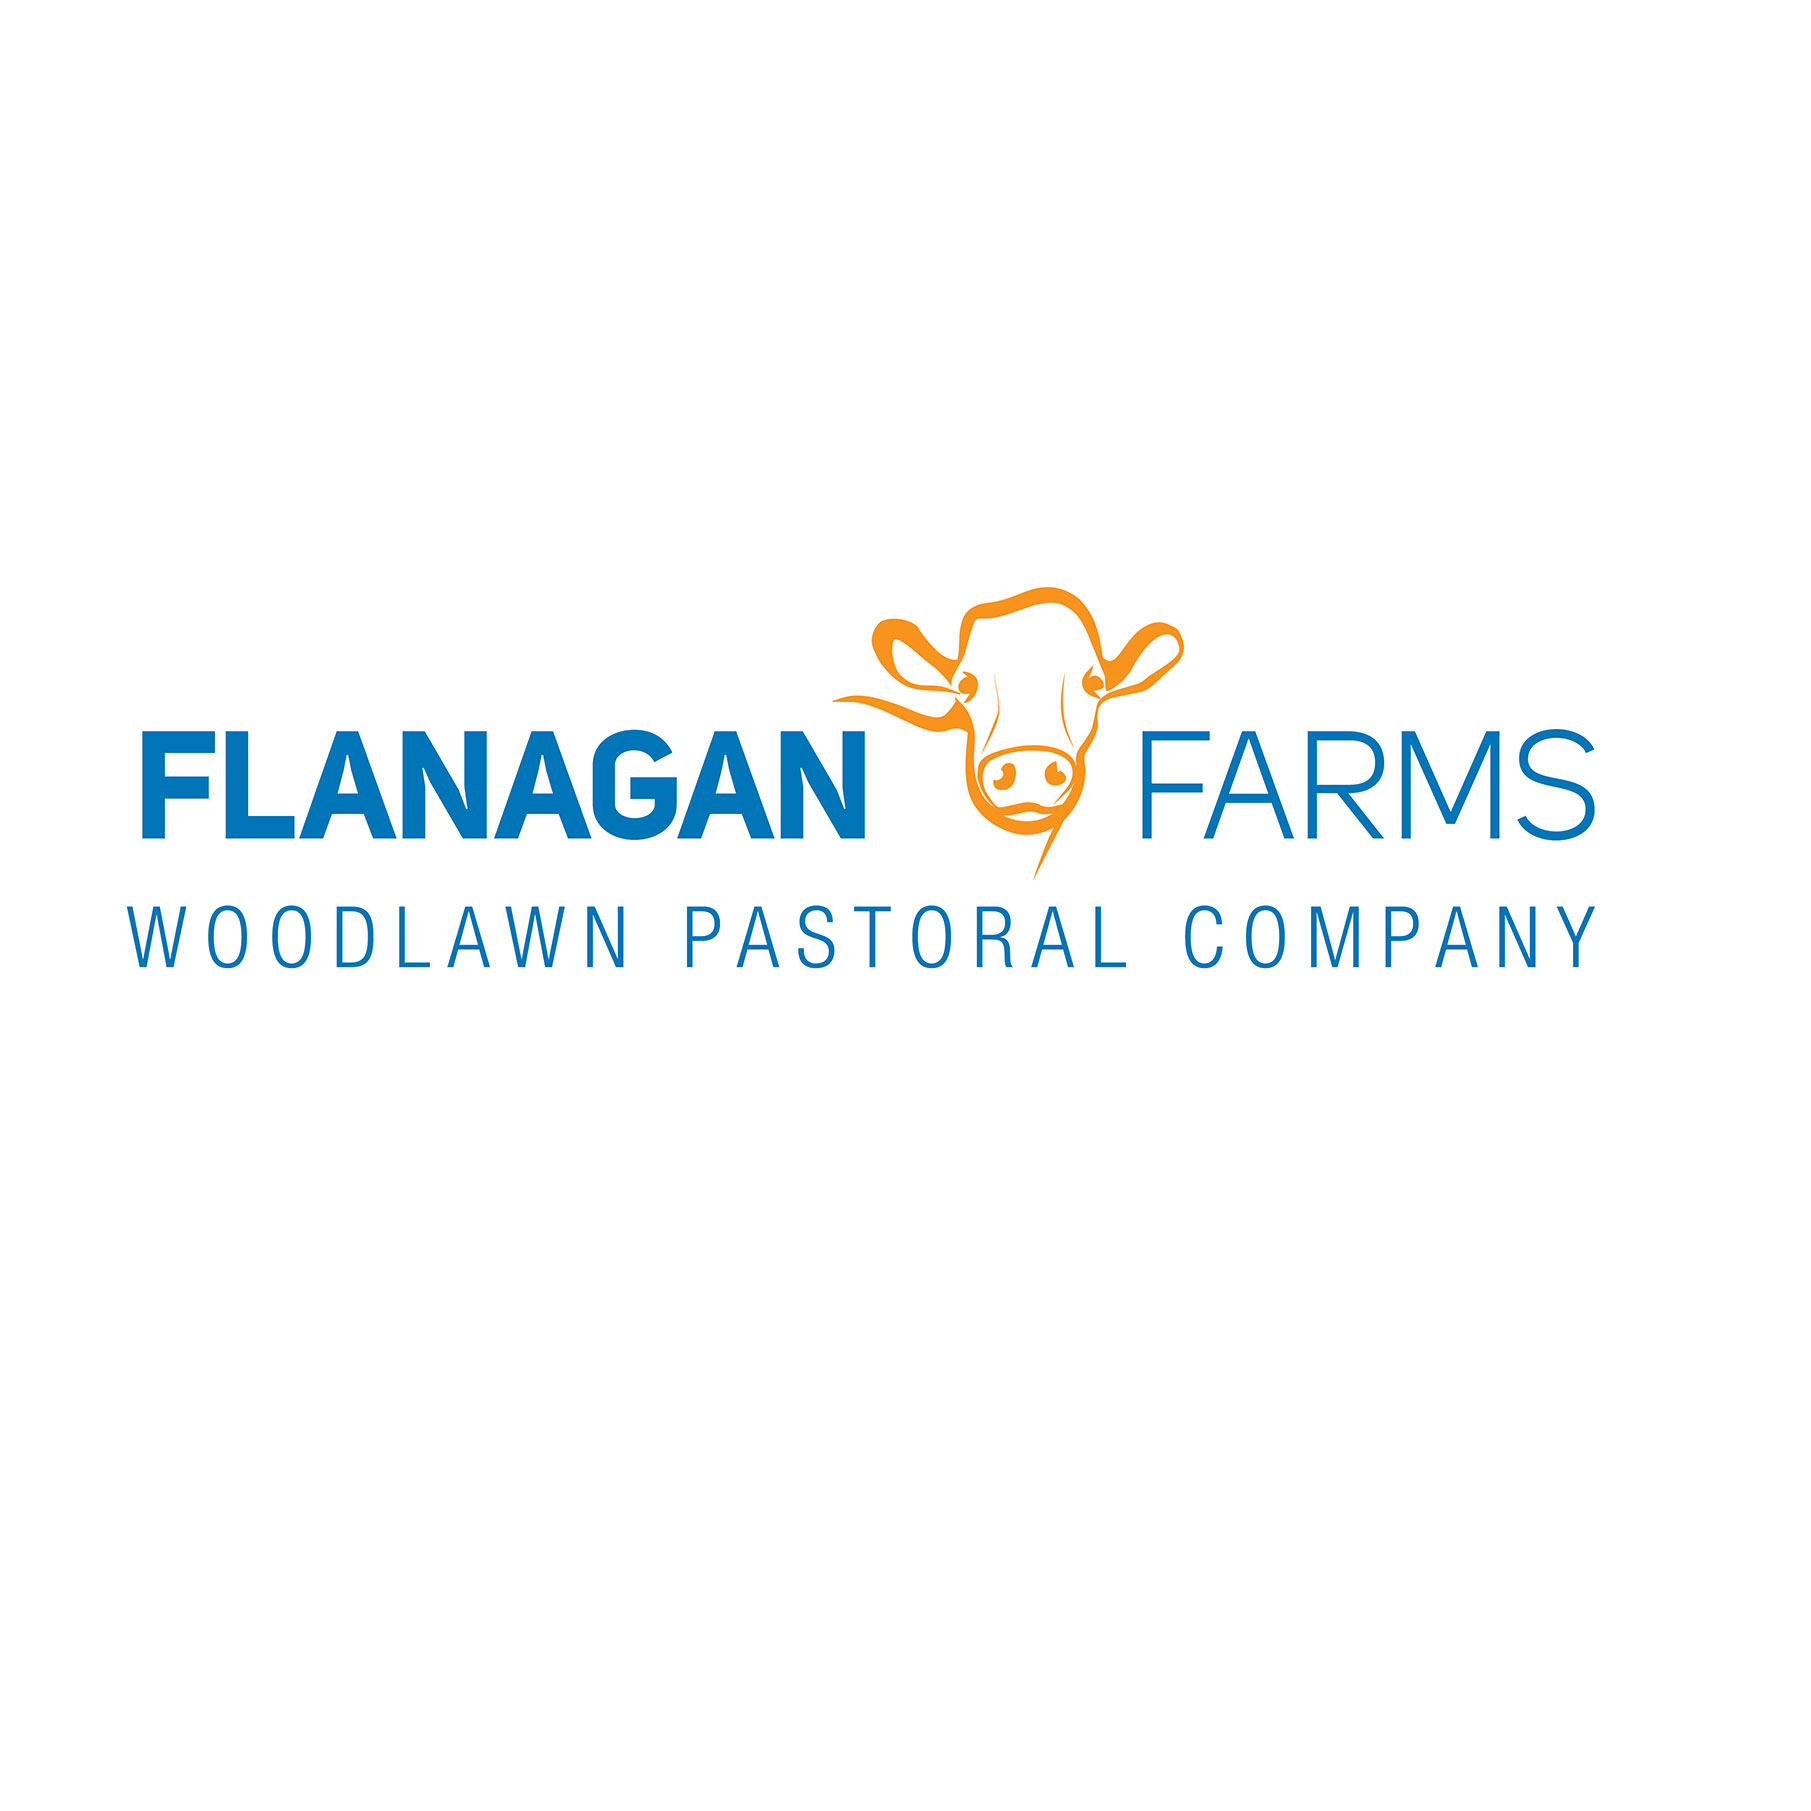 Flanagan-Farms